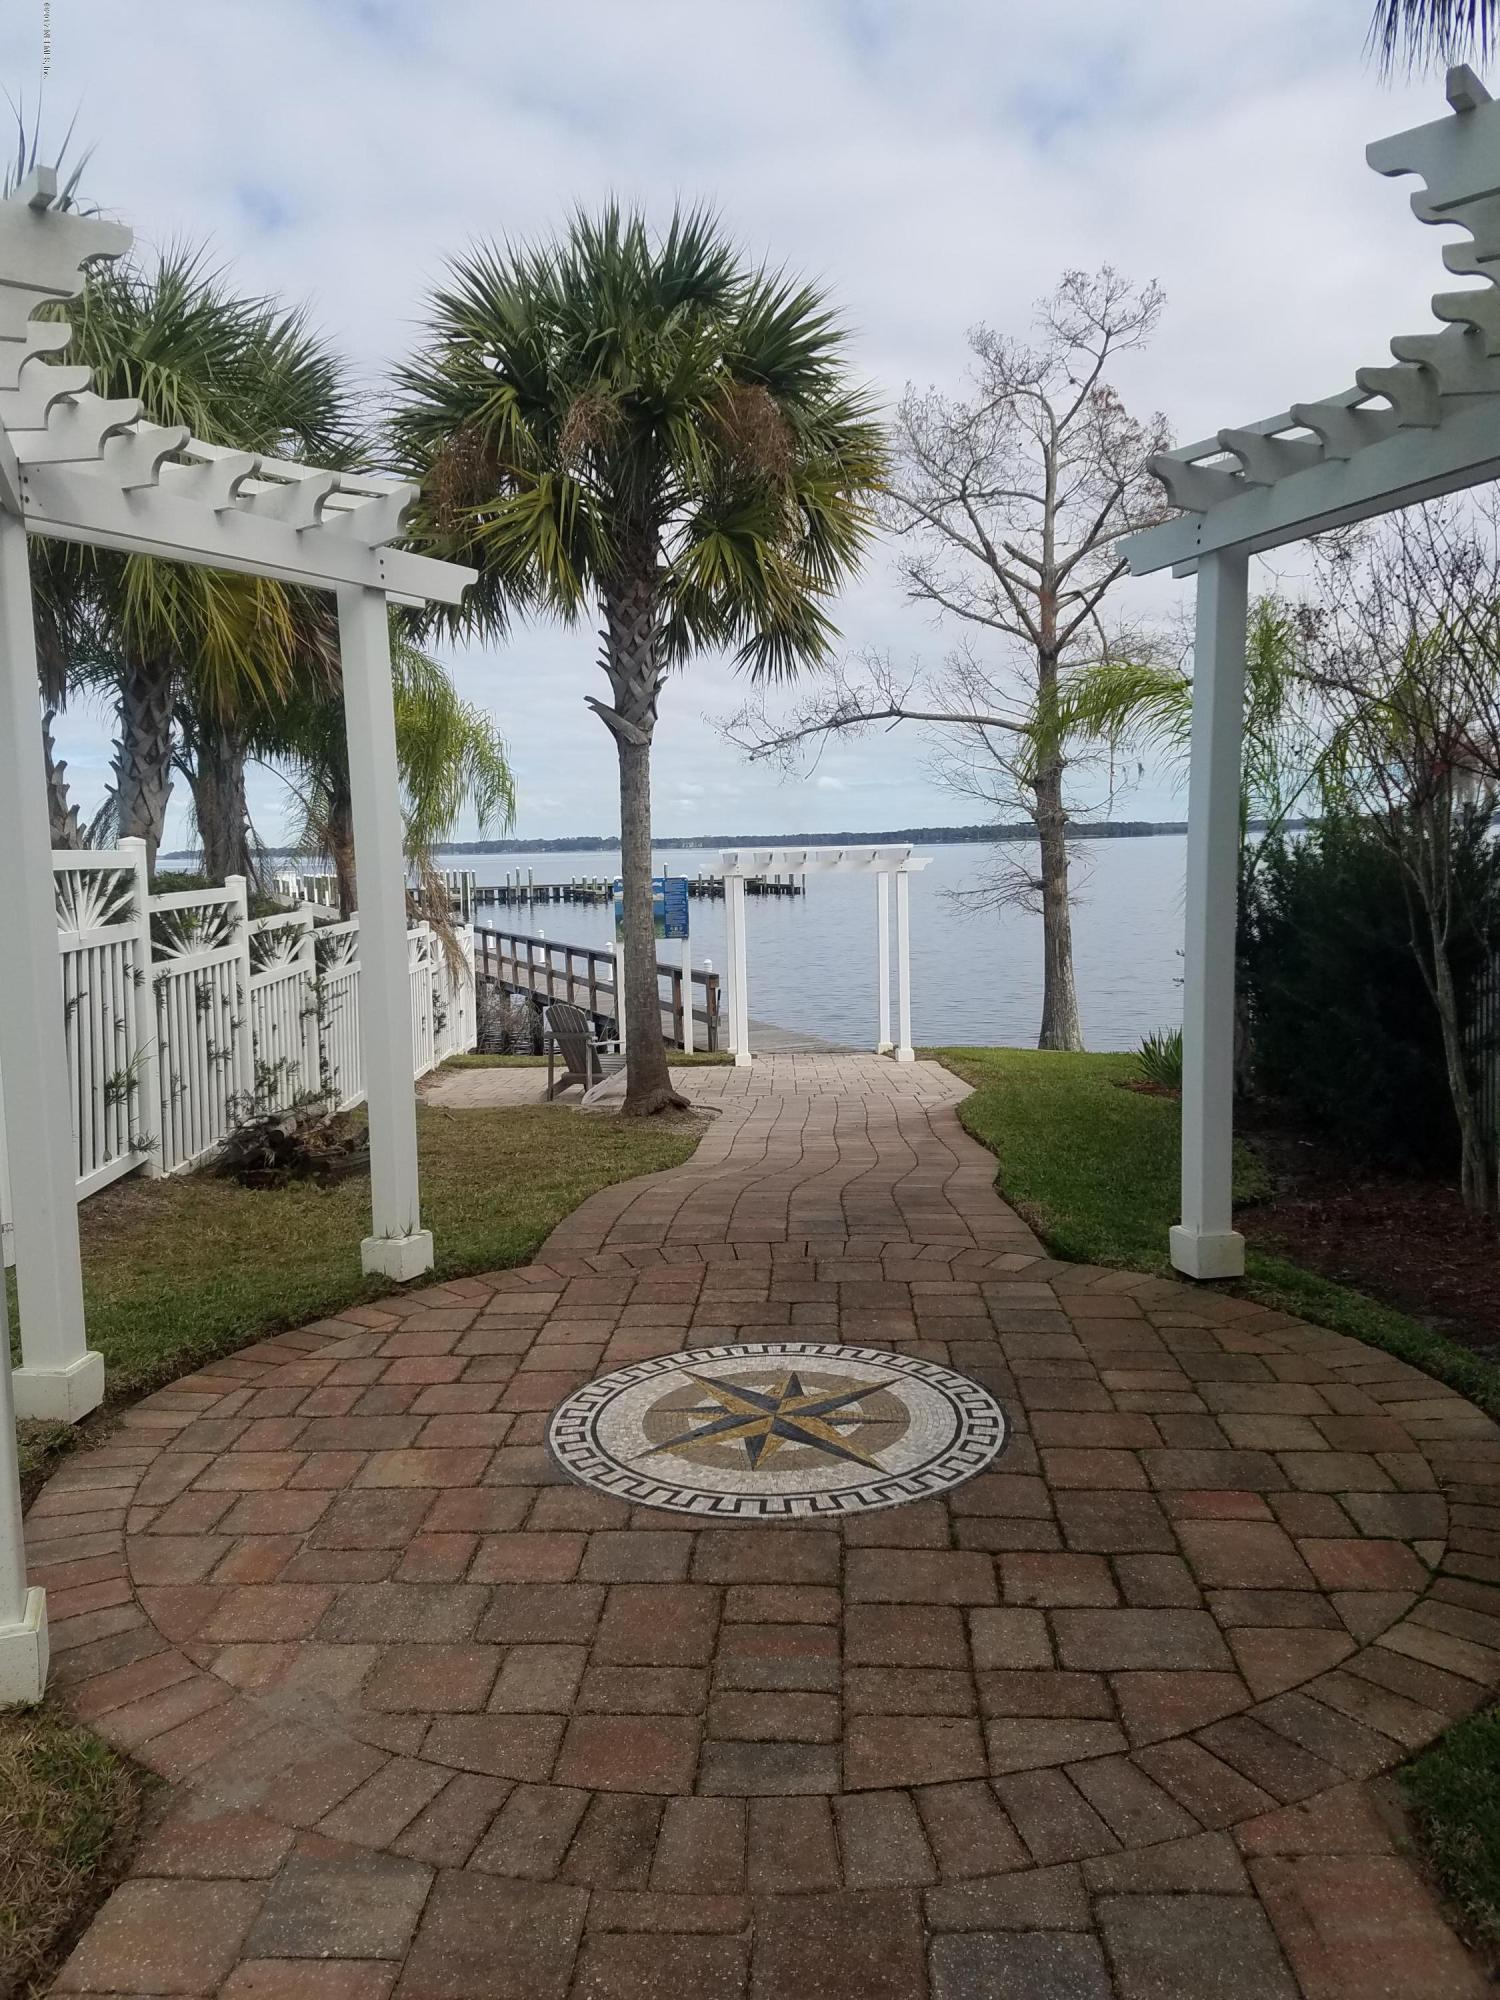 117 YACHT CLUB, GREEN COVE SPRINGS, FLORIDA 32043, ,Vacant land,For sale,YACHT CLUB,859073